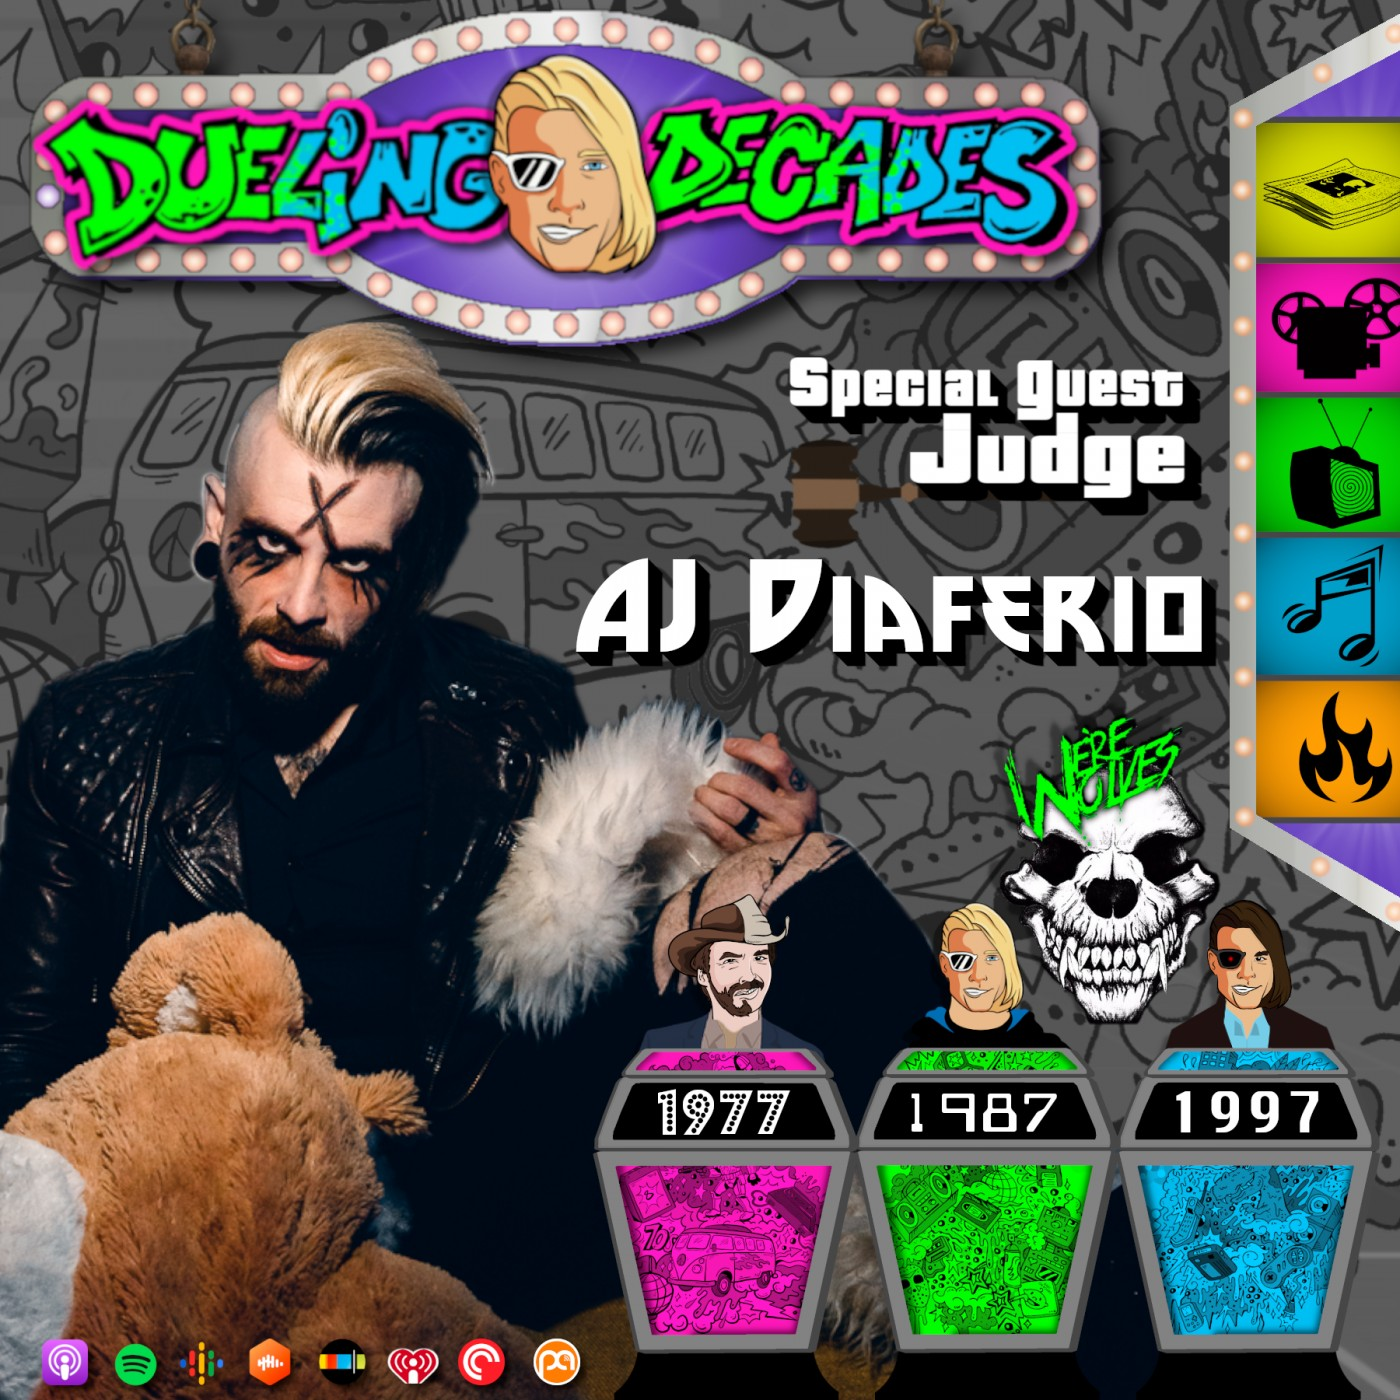 AJ Diaferio frontman of We're Wolves judges this horror showdown between 1977, 1987 & 1997!